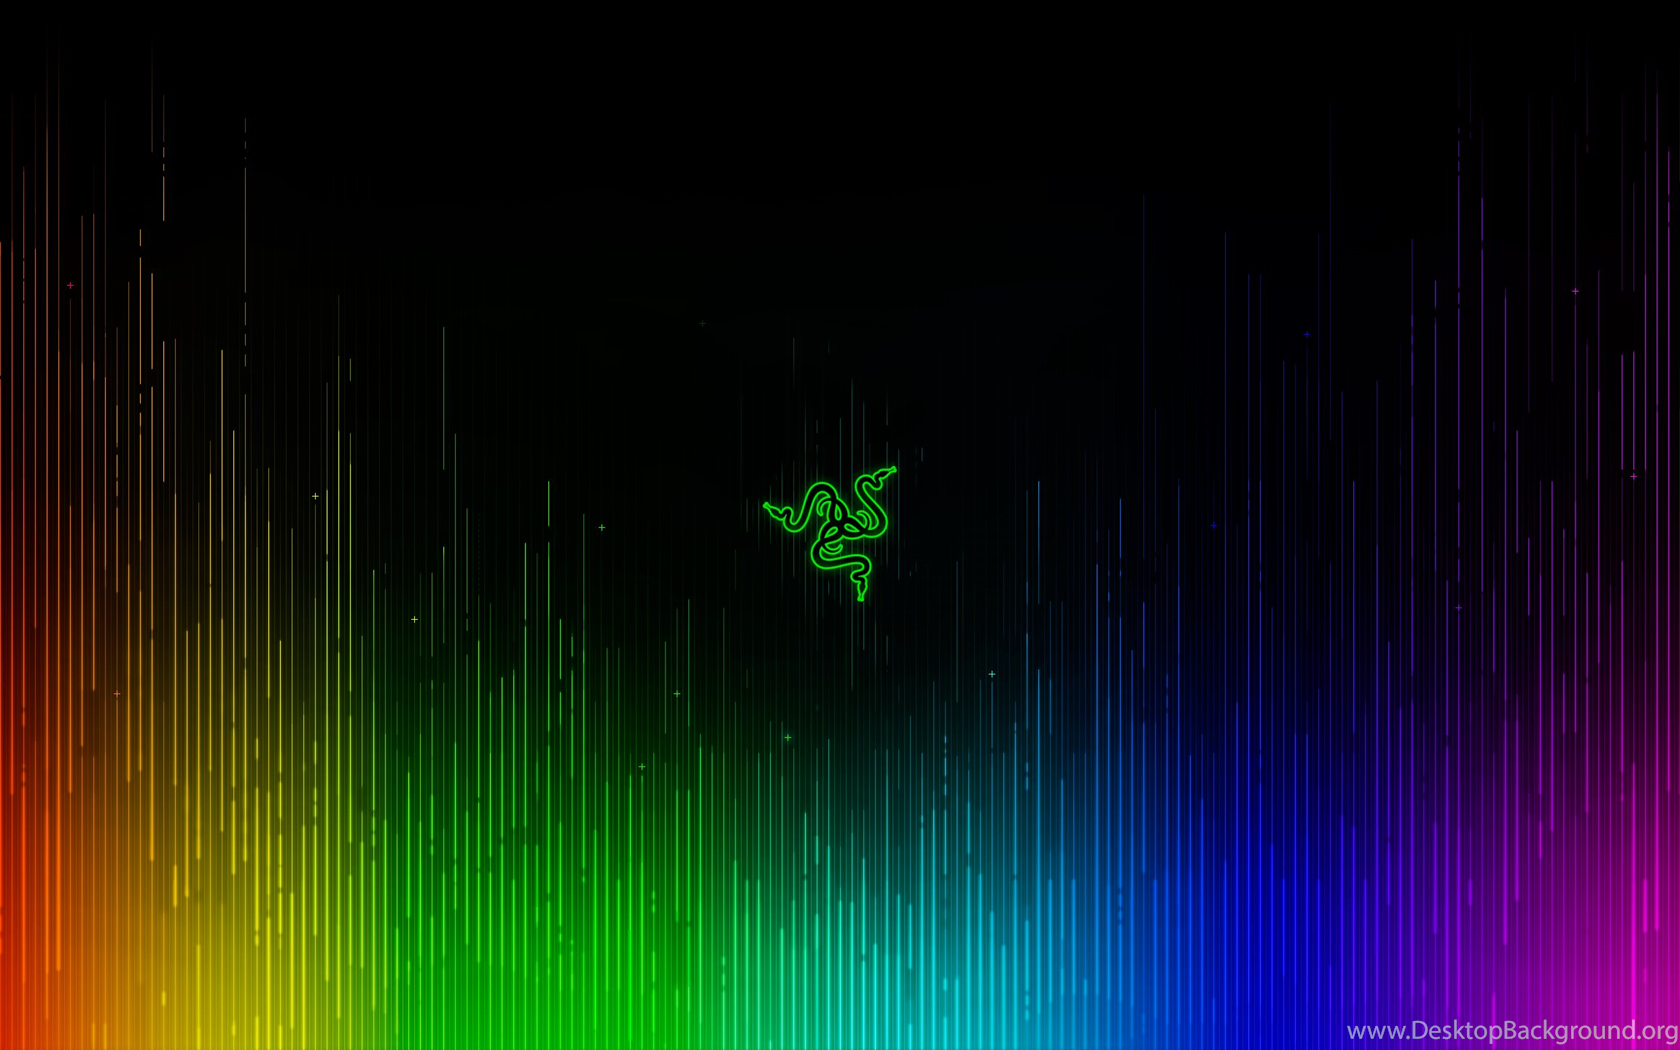 Razer downloads desktop background - Hd wallpaper for laptop 14 inch ...